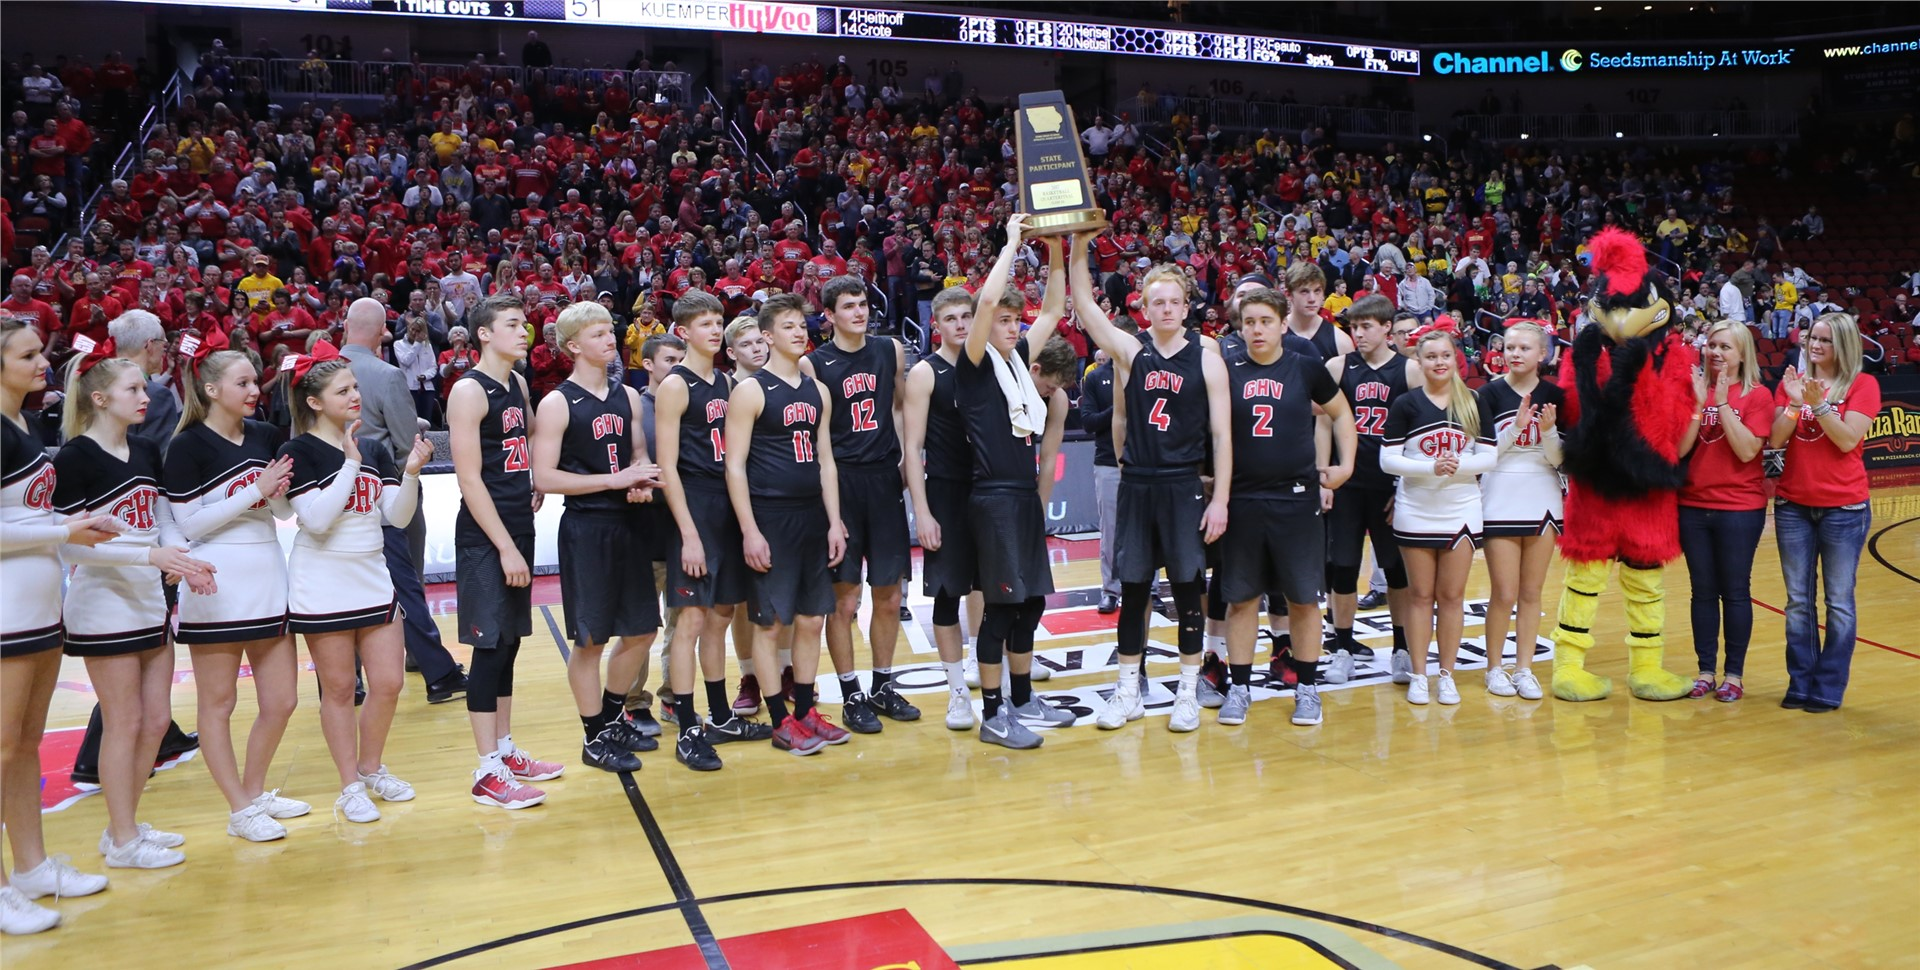 GHV Boys Basketball at the 2017 Iowa State Basketball Tourney